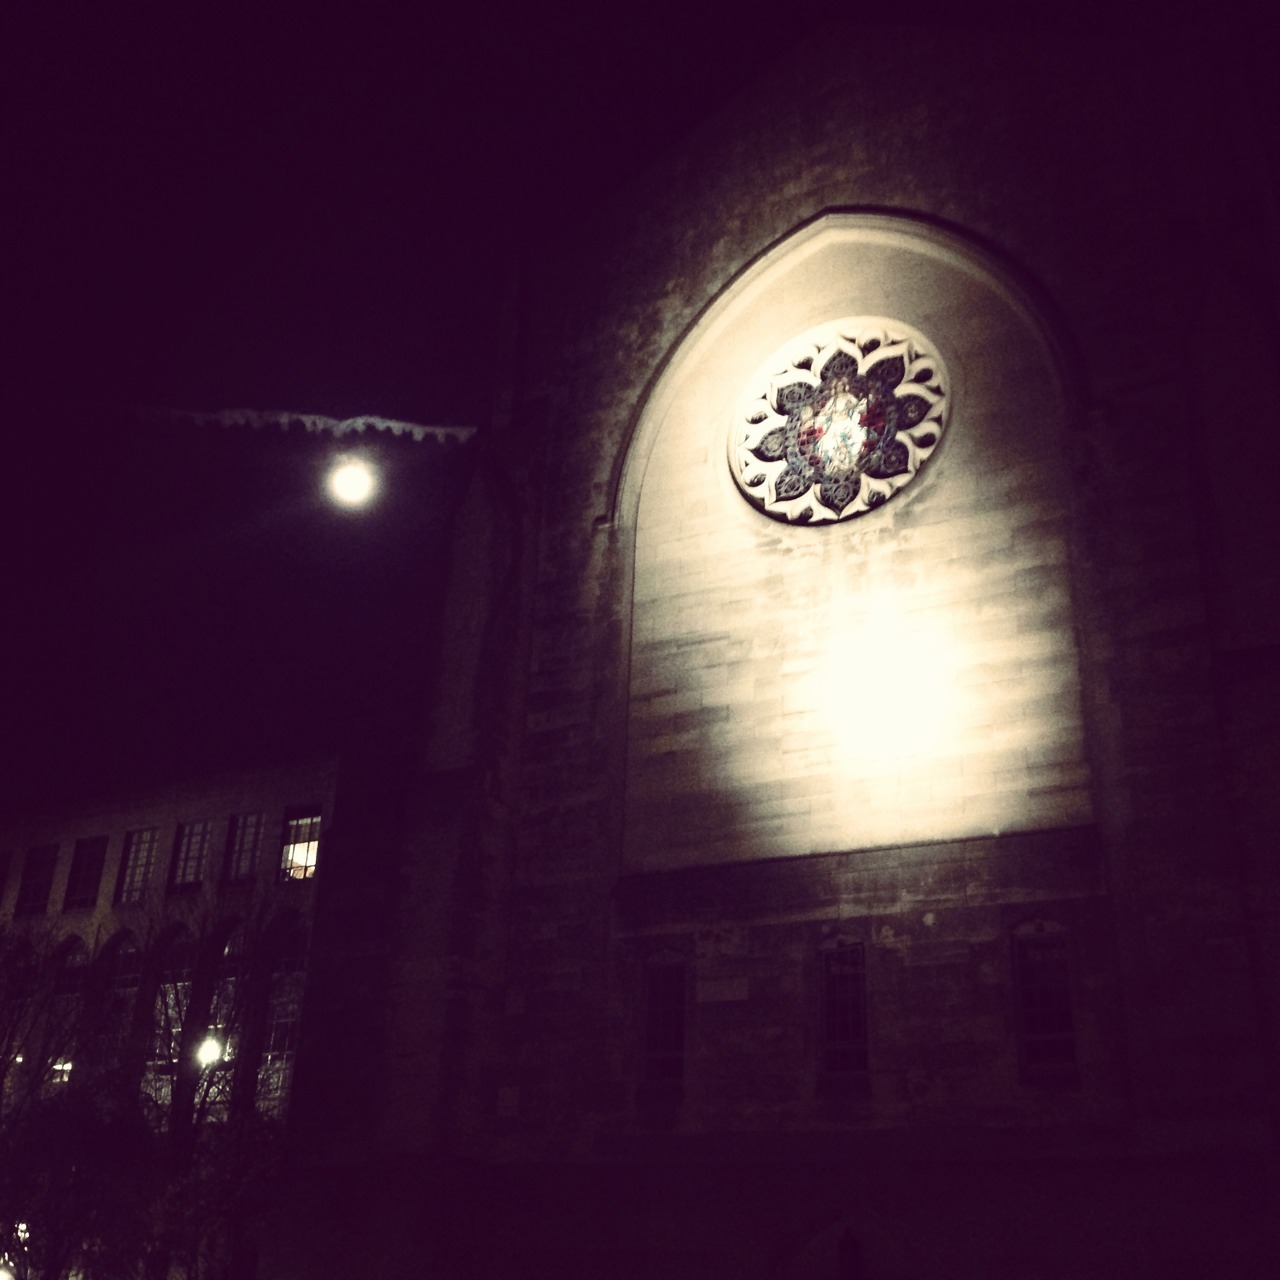 Chapel and moon lookin' spooky